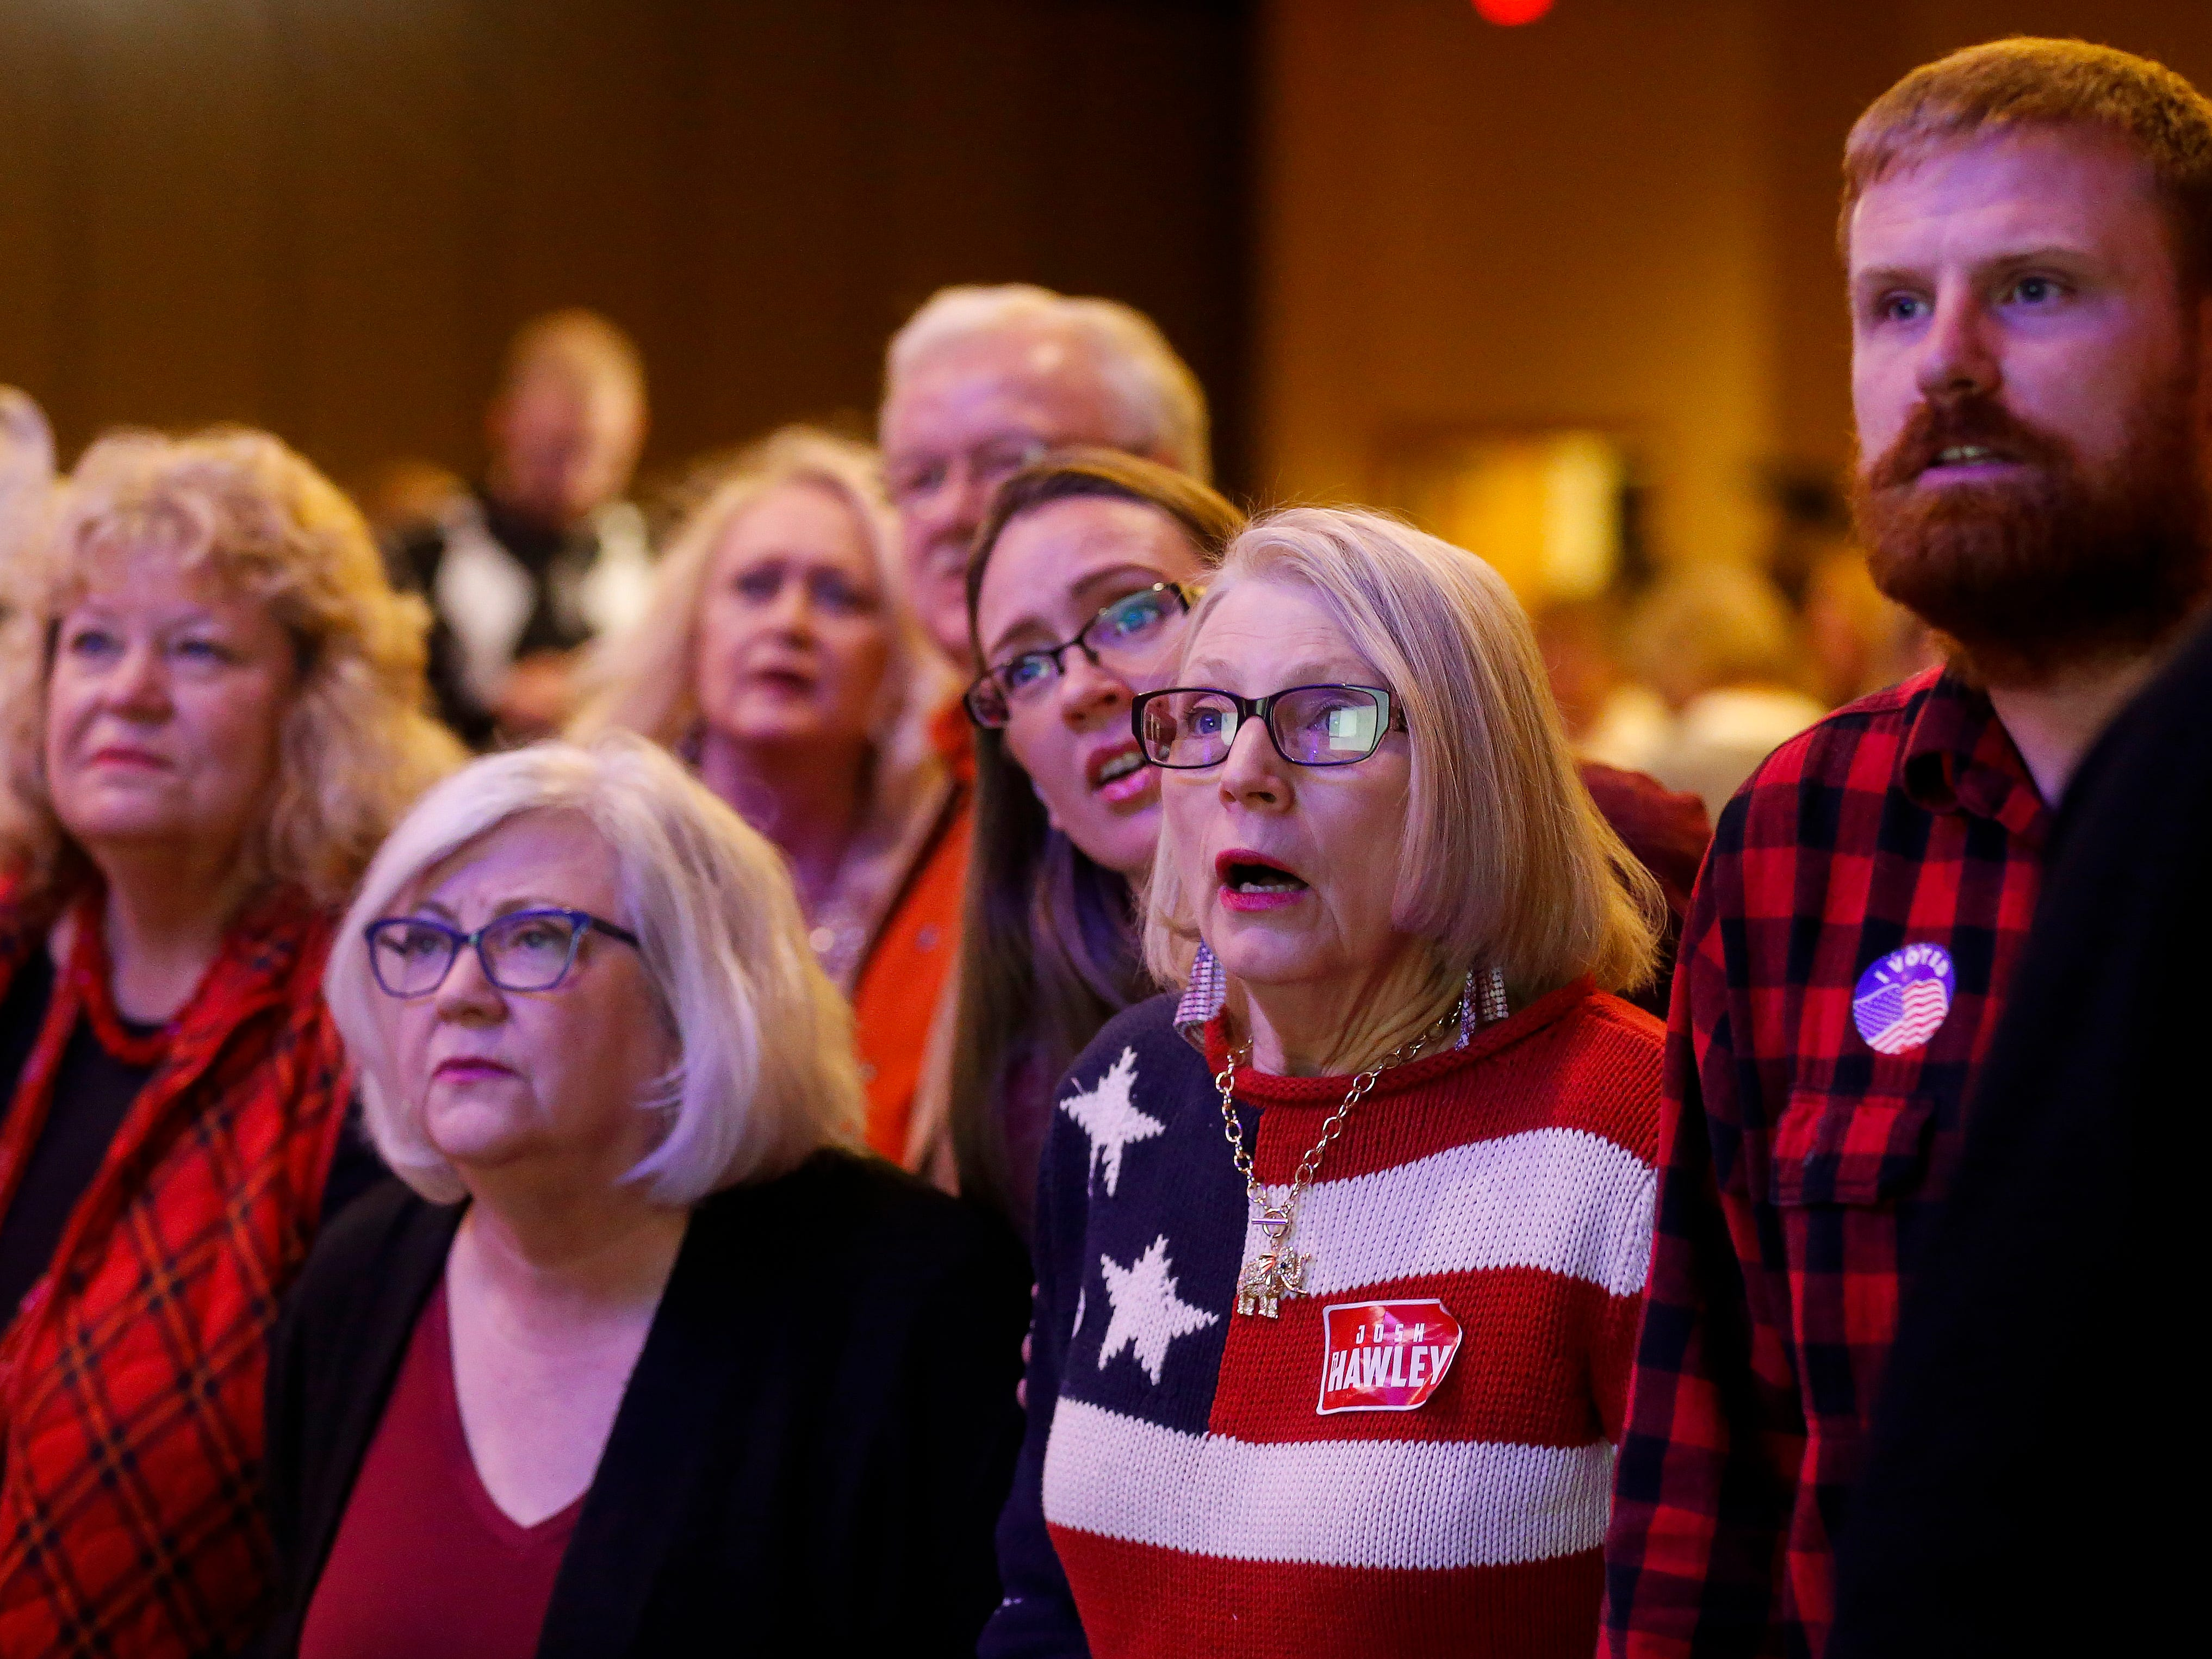 Scenes from the Greene County Republican's watch party at the University Plaza hotel on Tuesday, Nov. 6, 2018.